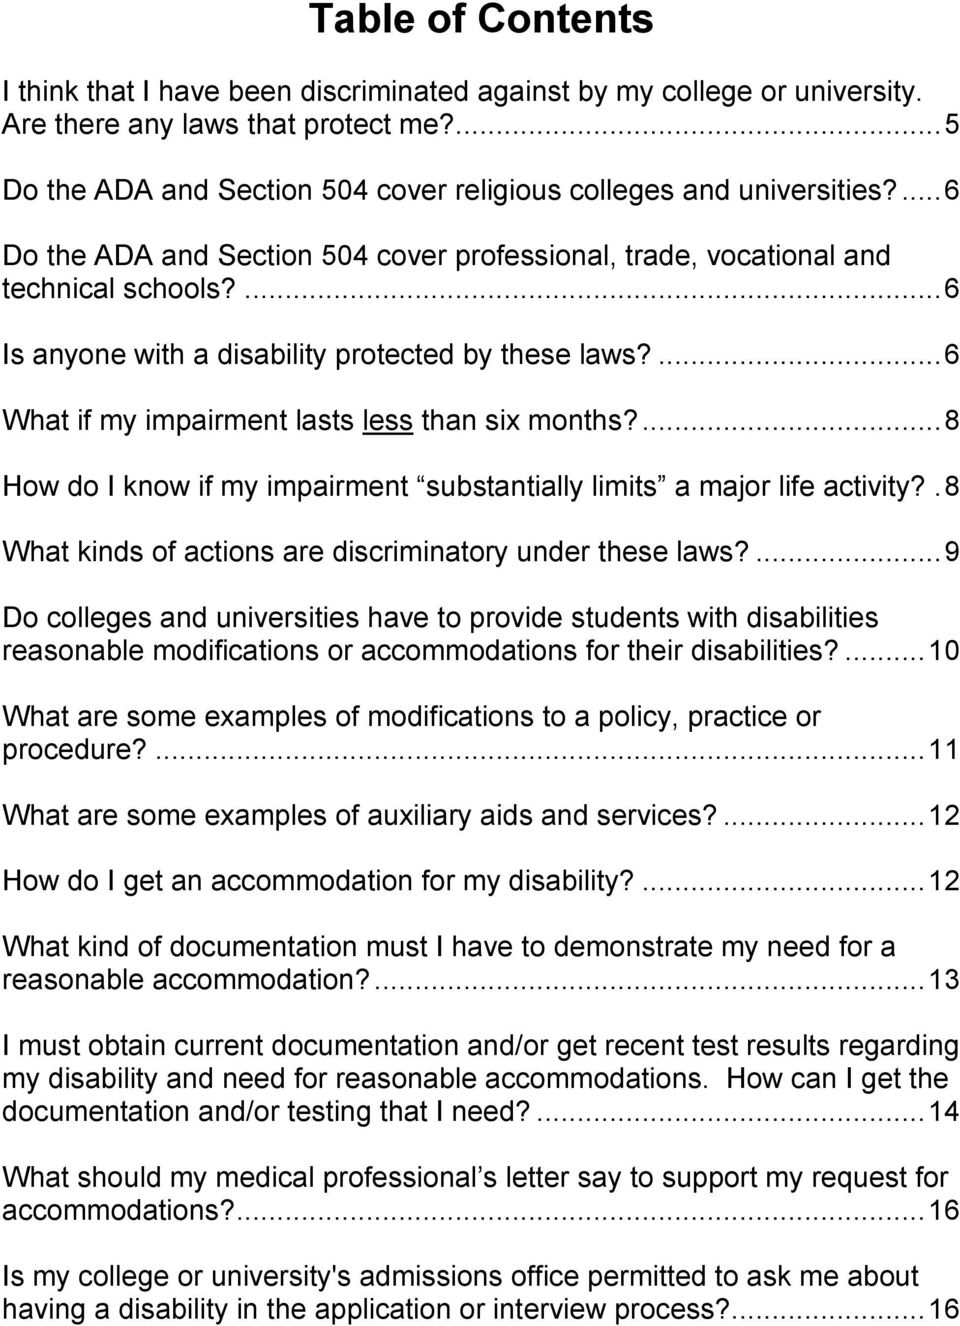 ... 6 Is anyone with a disability protected by these laws?... 6 What if my impairment lasts less than six months?... 8 How do I know if my impairment substantially limits a major life activity?